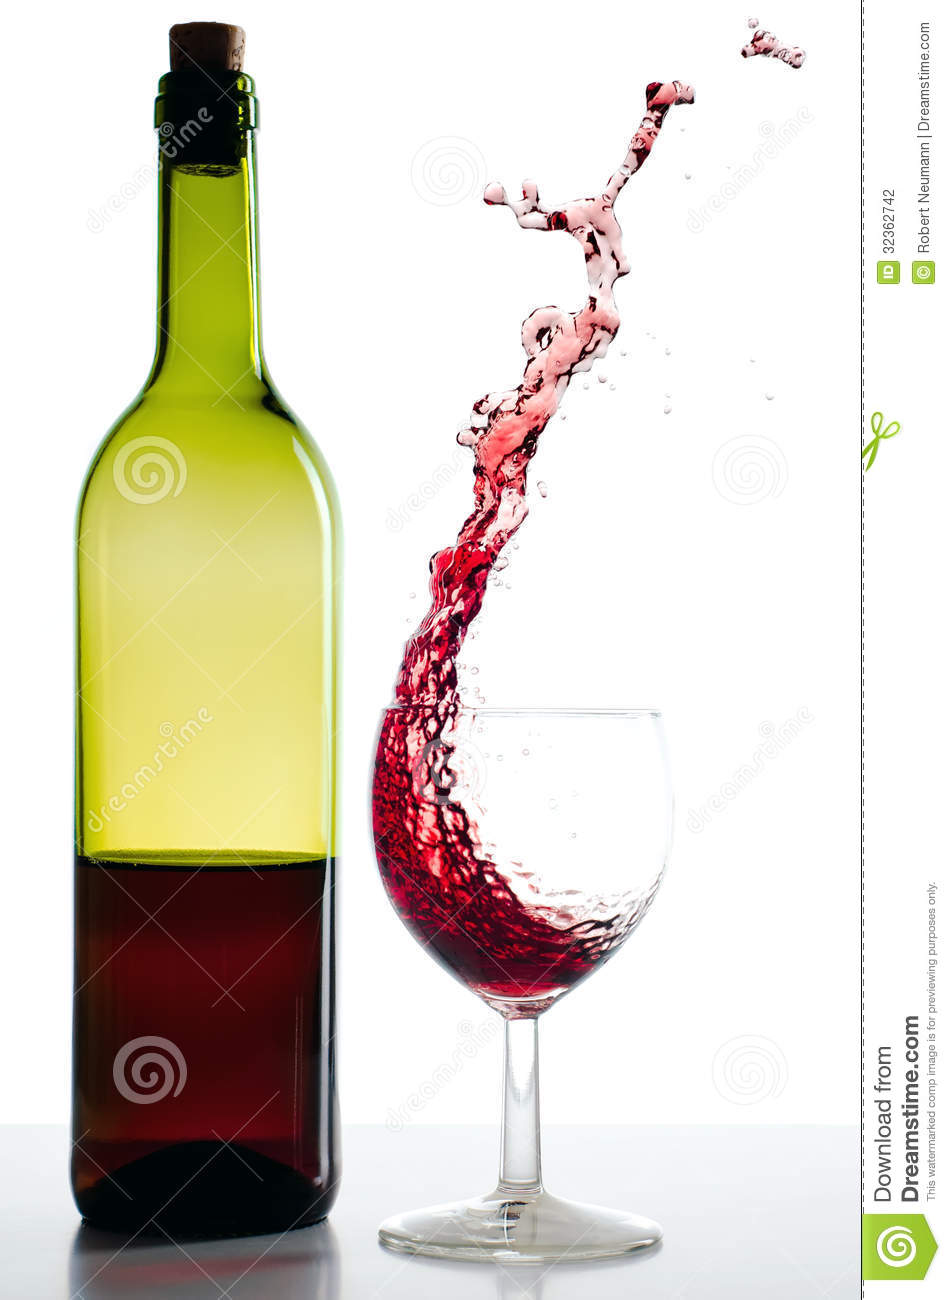 red wine bottle and red wineglass splash bottle red wine